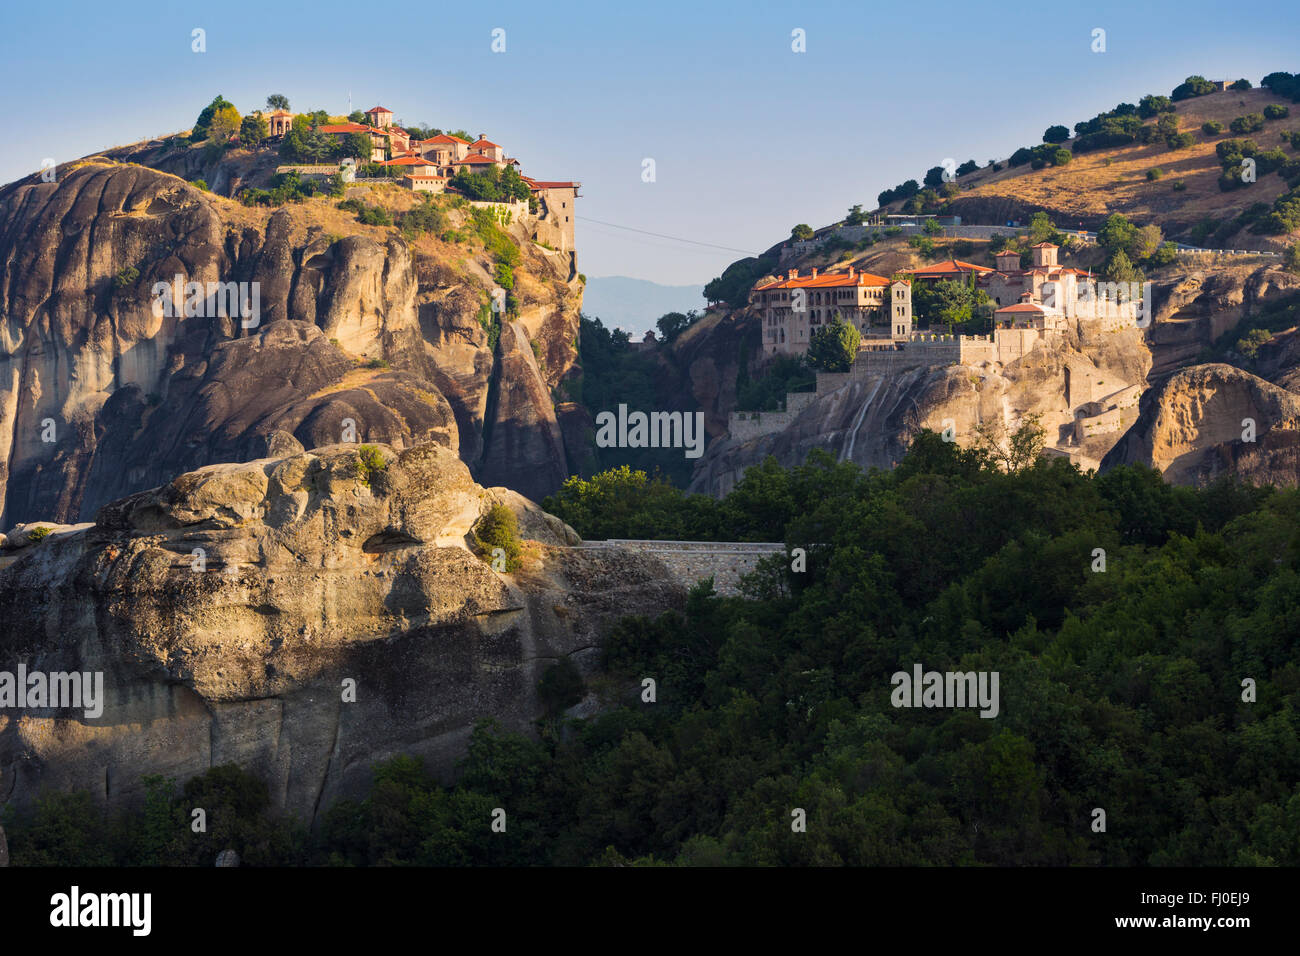 Meteora, Thessaly, Greece.  Varlaam monastery (left) and The Great Meteora monastery (right). - Stock Image